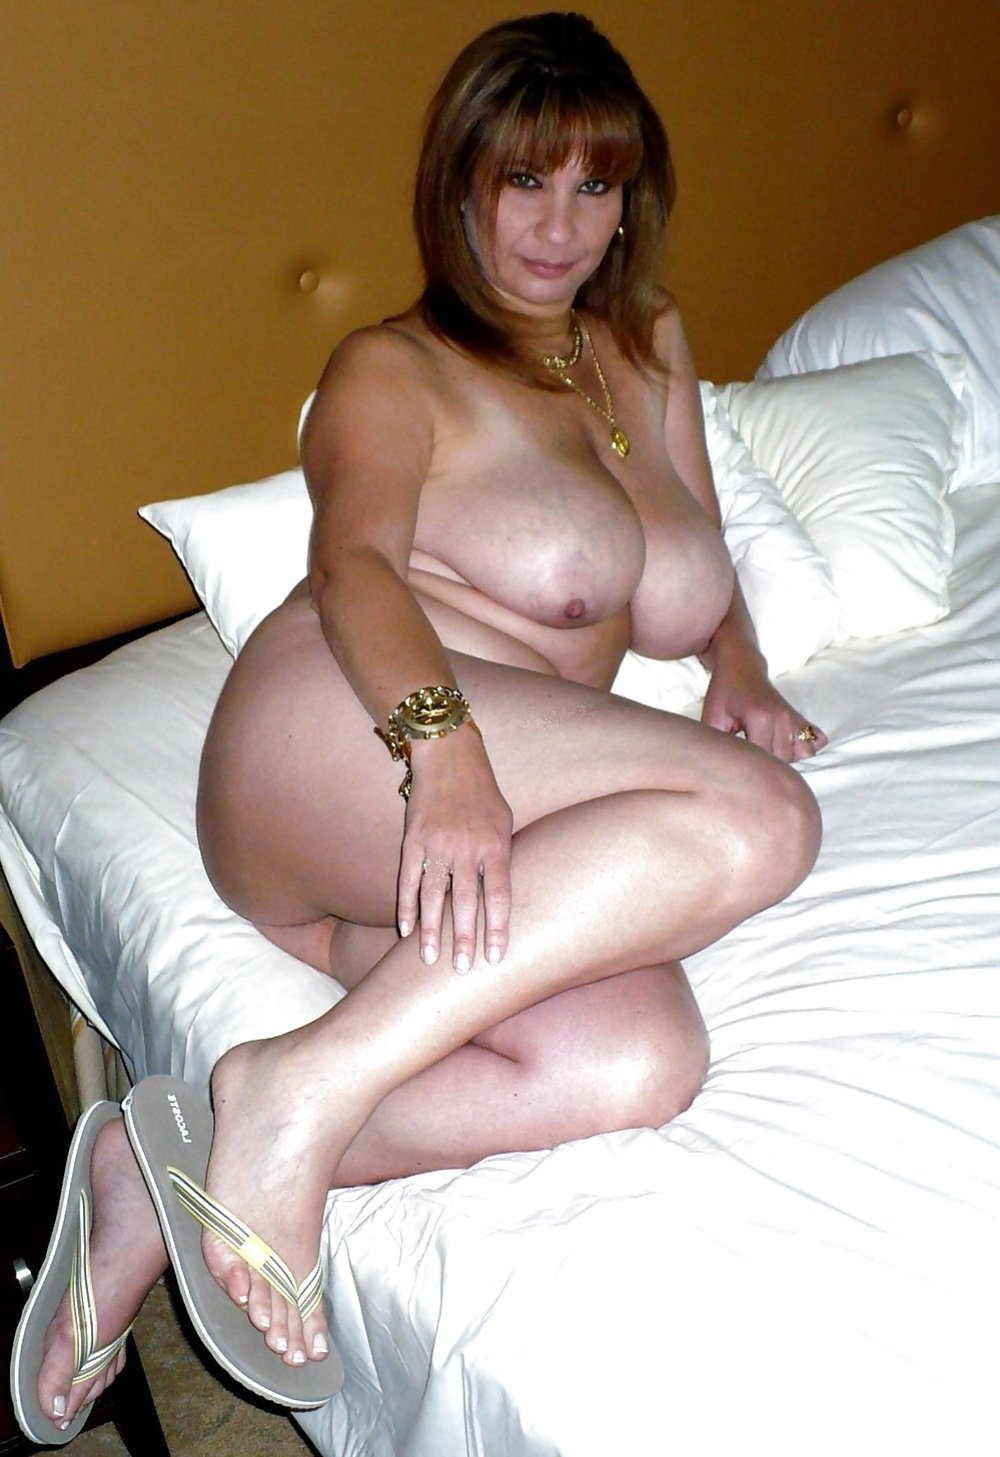 Czech Republic has some of the HOTTEST sluts in the world